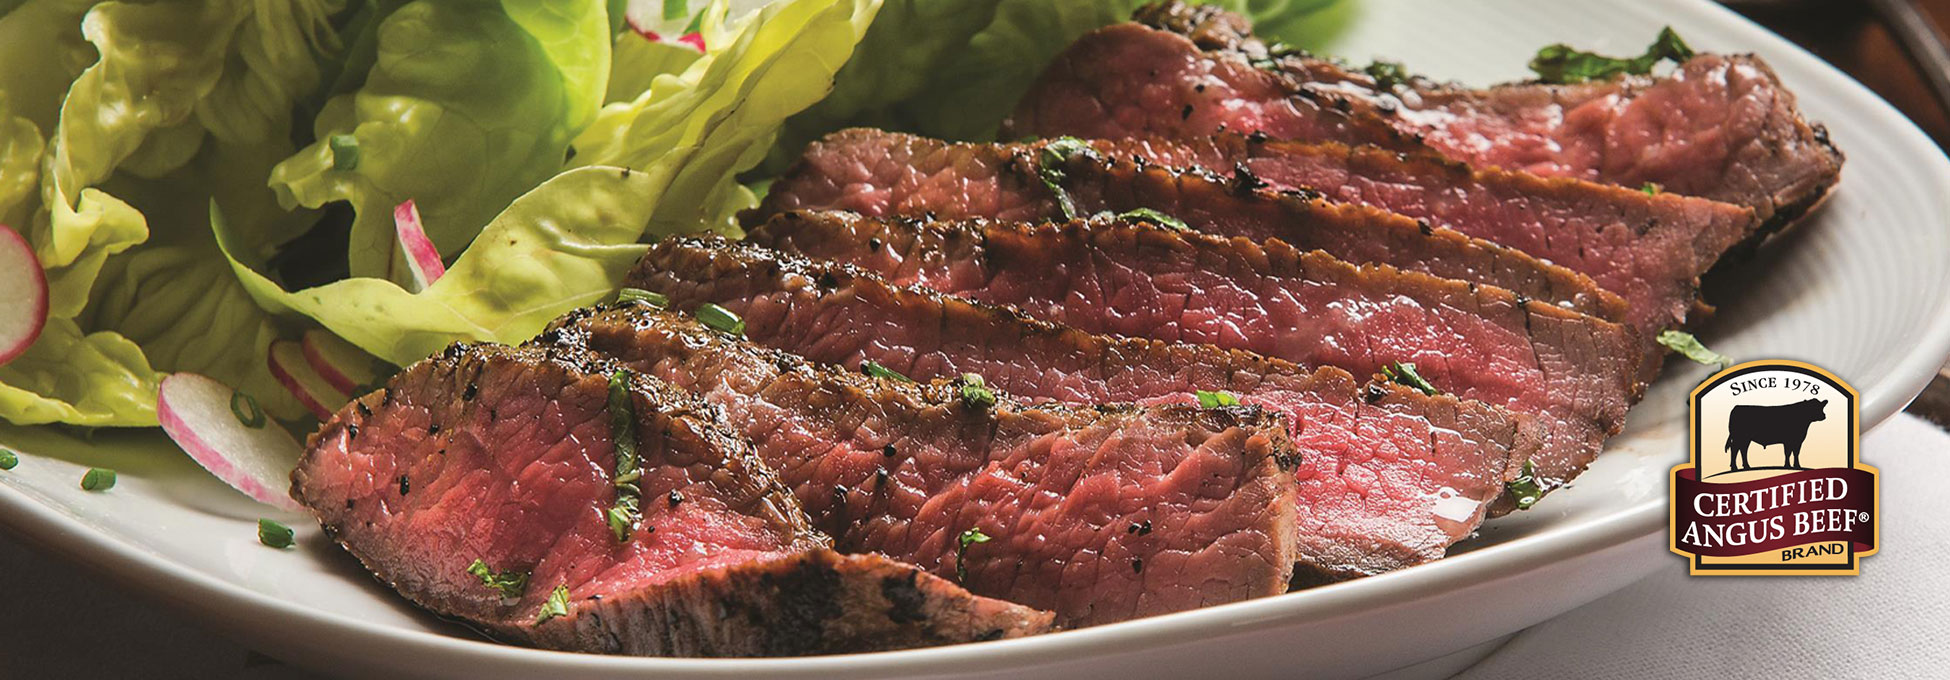 trigs-homepg-CAB-center-cut-sirloin-steak.jpg